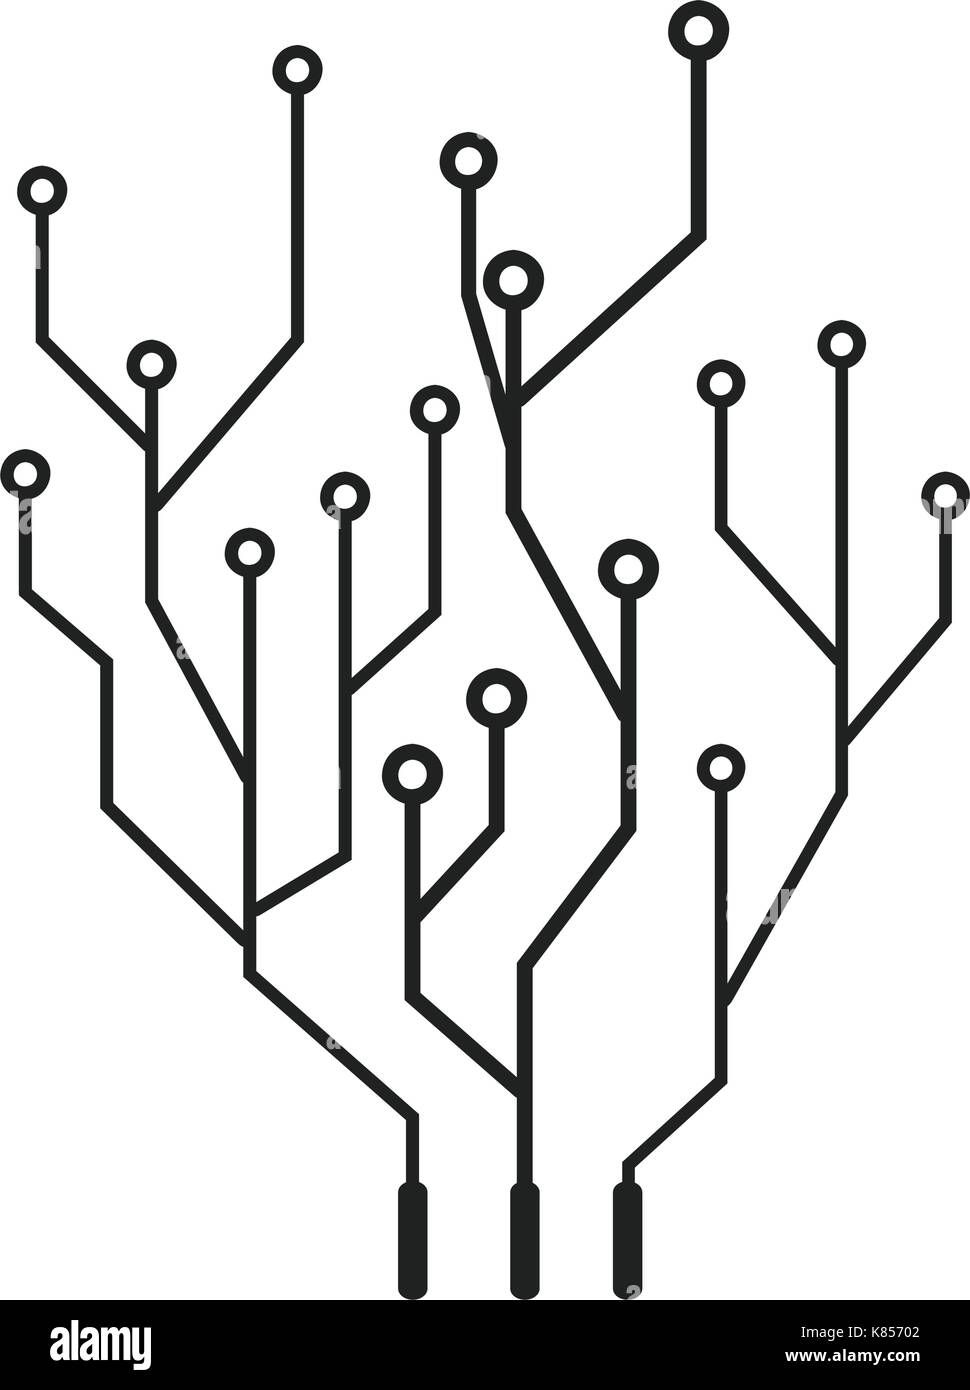 Awesome Circuit Imprimé Vector Picture Collection - Electrical ...